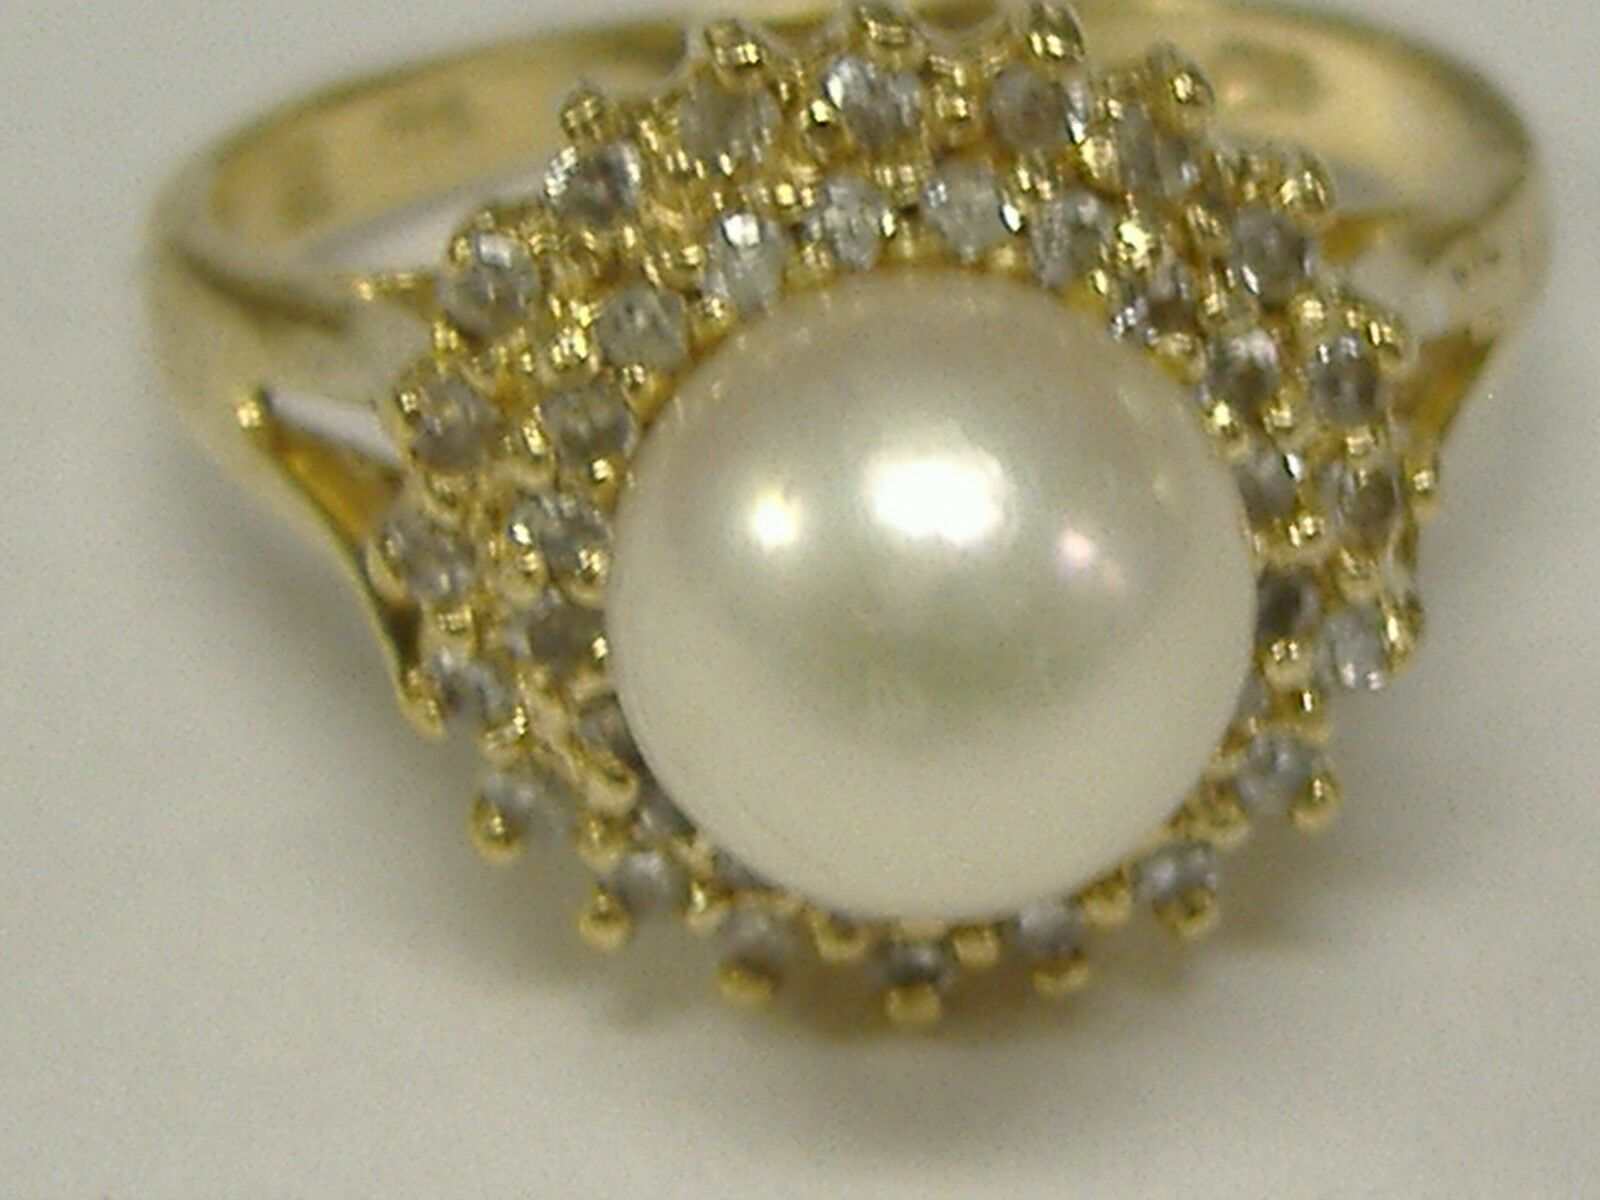 VINTAGE 14 K gold NATURAL 7 MMPEARL & NATURAL DIAMONDS 0.20CT TW RING SIZE 5.75